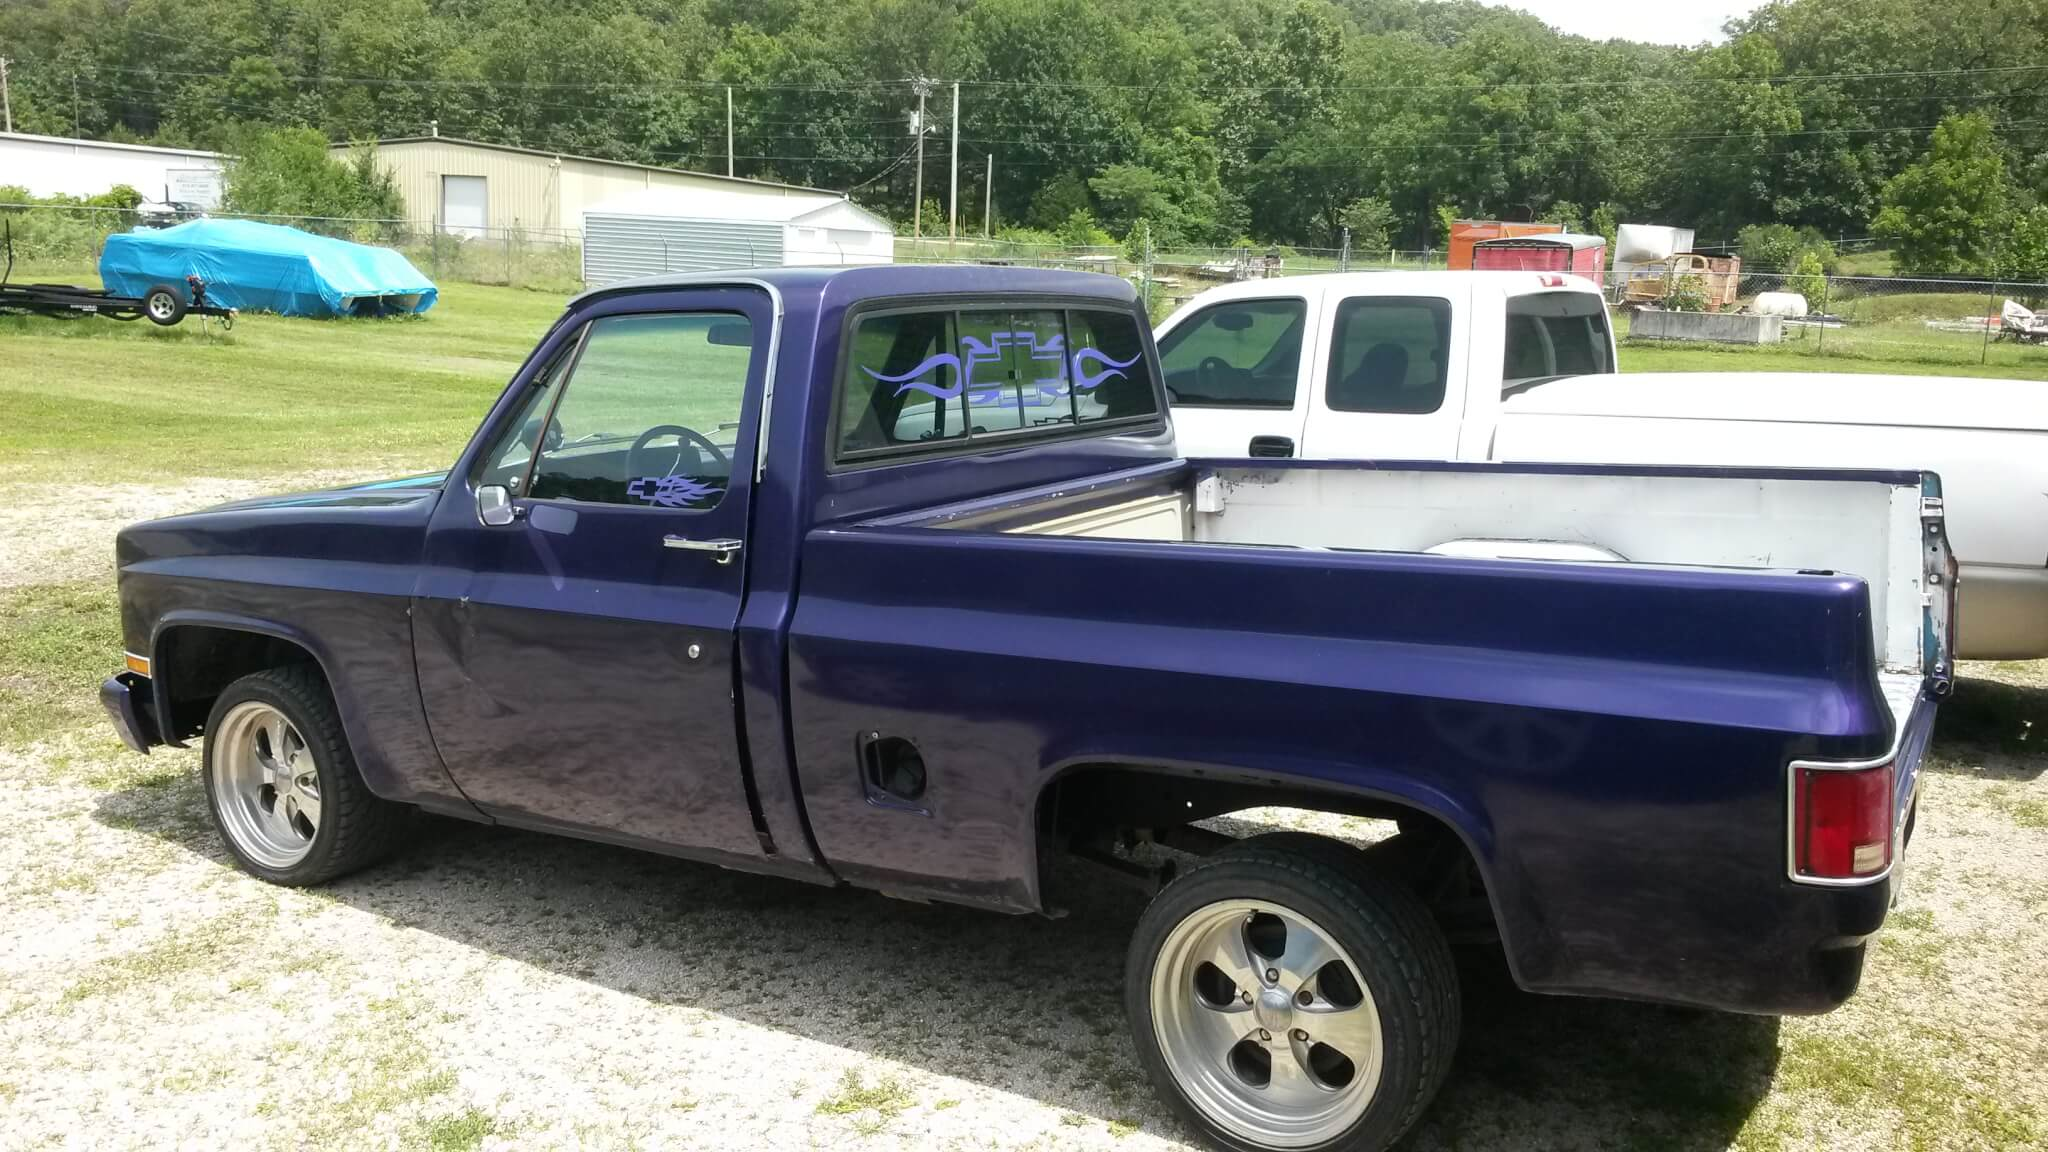 1984 chevy c10 richard c lmc truck life but i have purchased door panels headliner nuts bolts taillights vents taillight wiring harness grill list goes on thank you lmc for taking all the guess